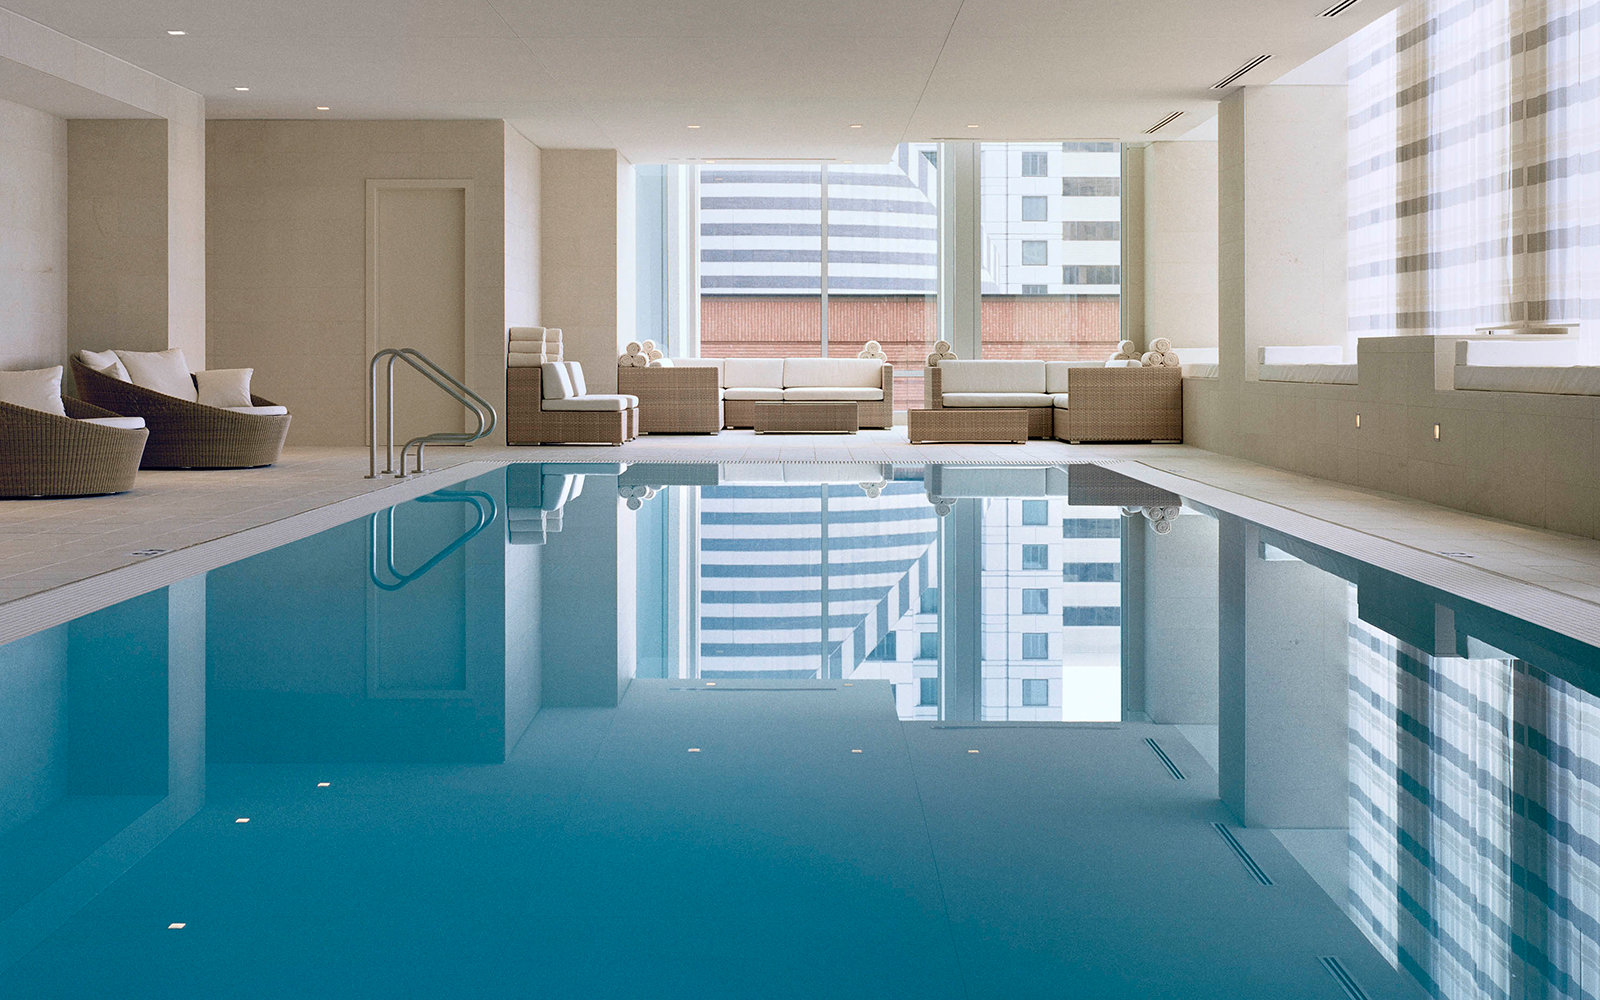 The St. Regis San Francisco pool